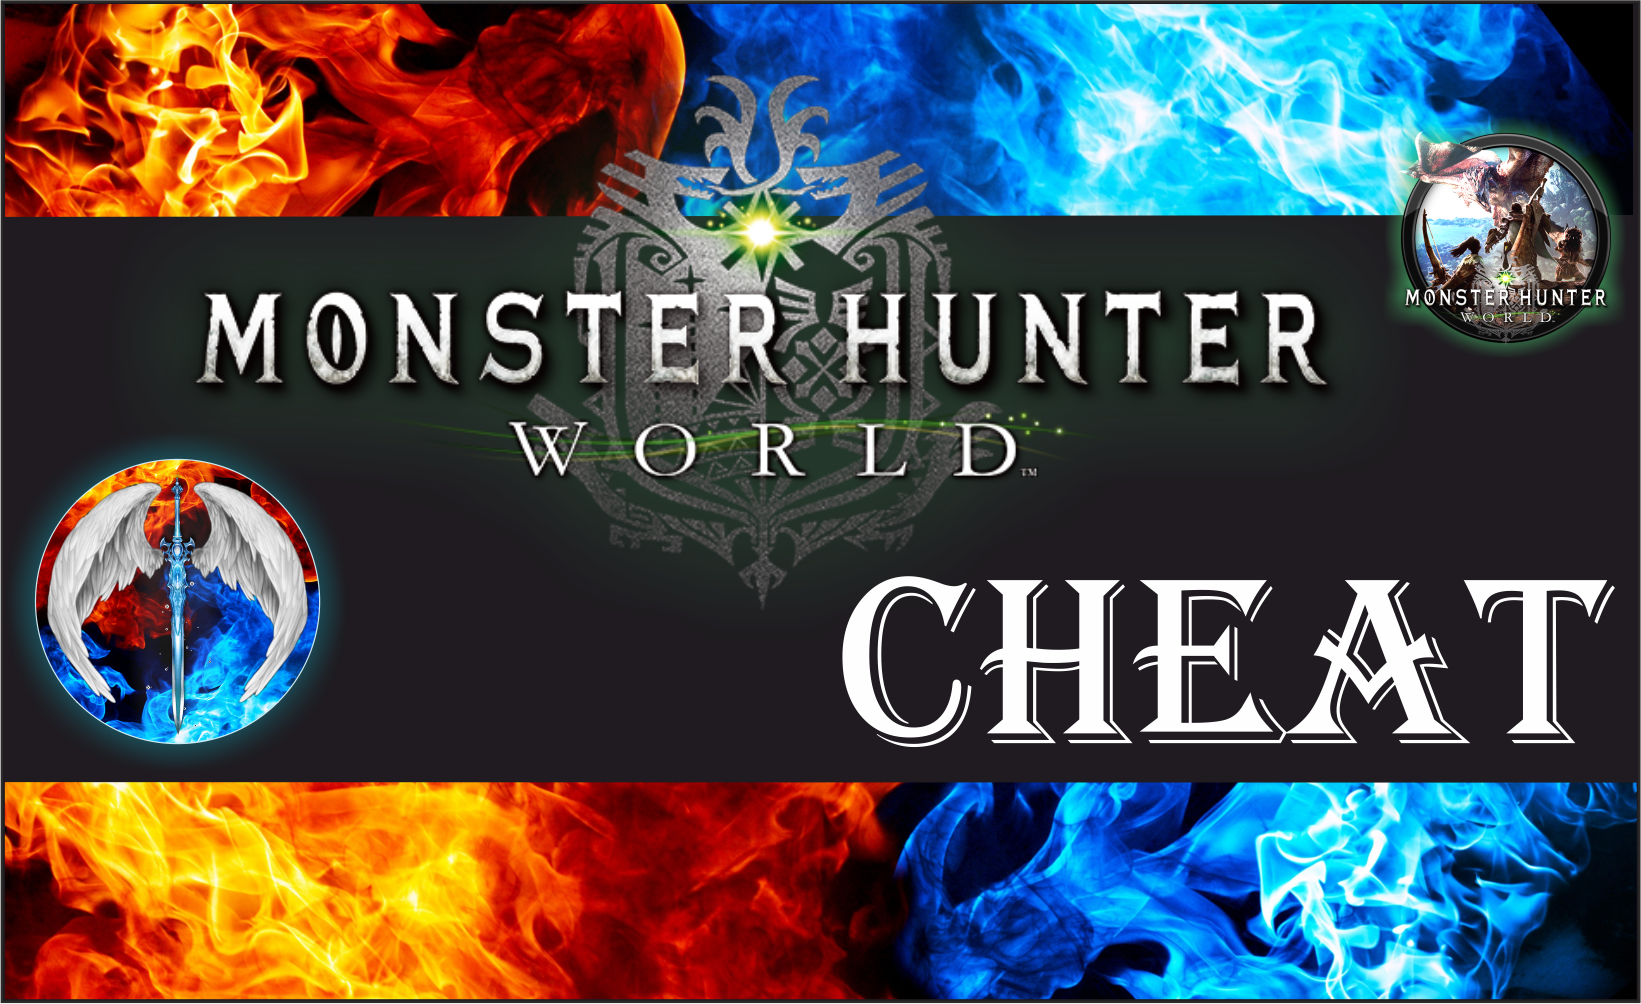 MONSTER HUNTER WORLD + SPECIAL WEAPONS (Ver 167796) Double Cheat Software